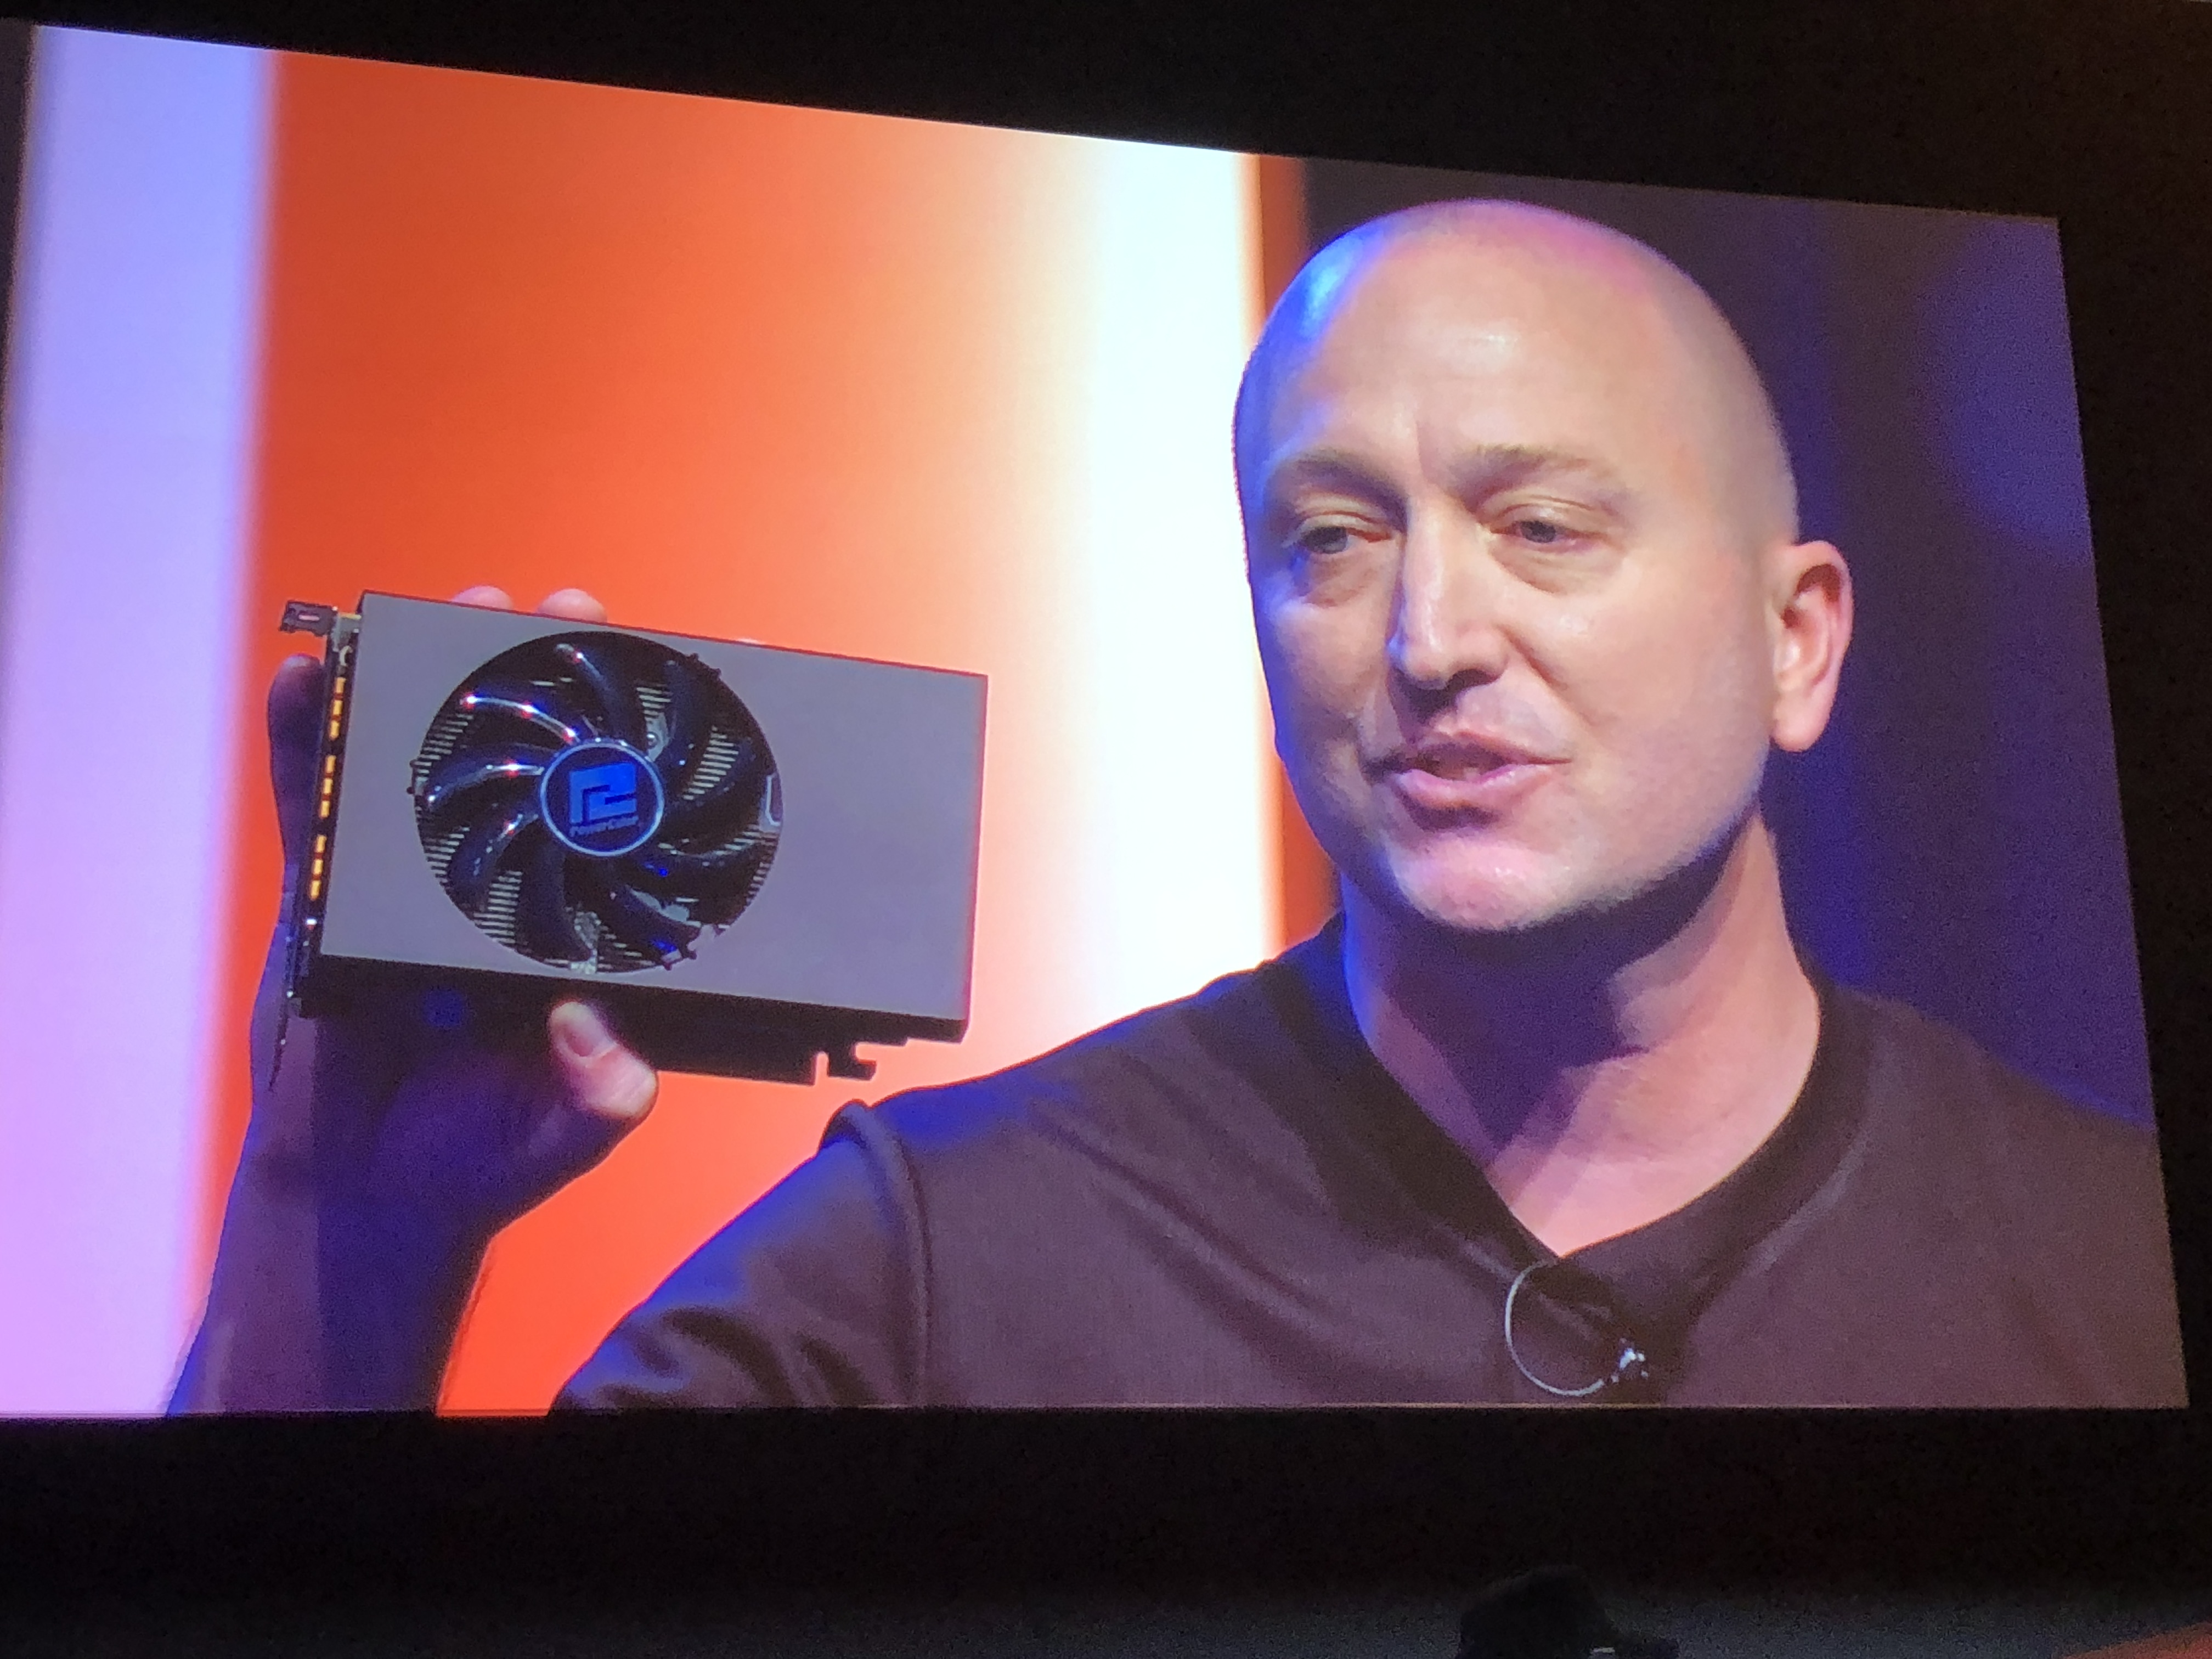 AMD unveils Threadripper 2: 32 cores, 64 threads, 250W TDP